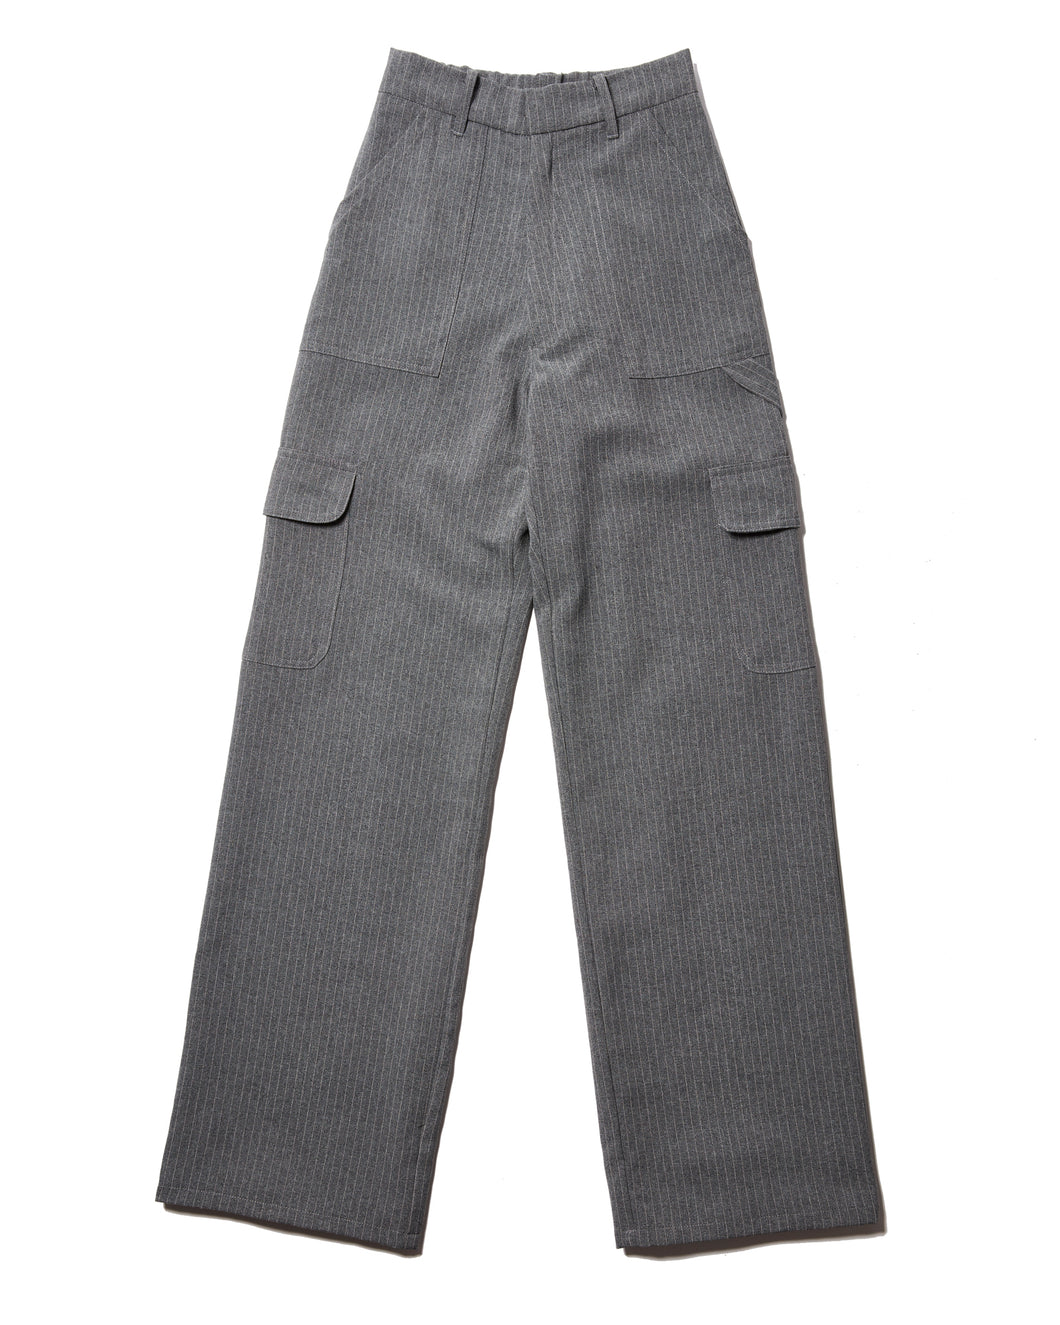 The Cargo Pant In Pinstripe